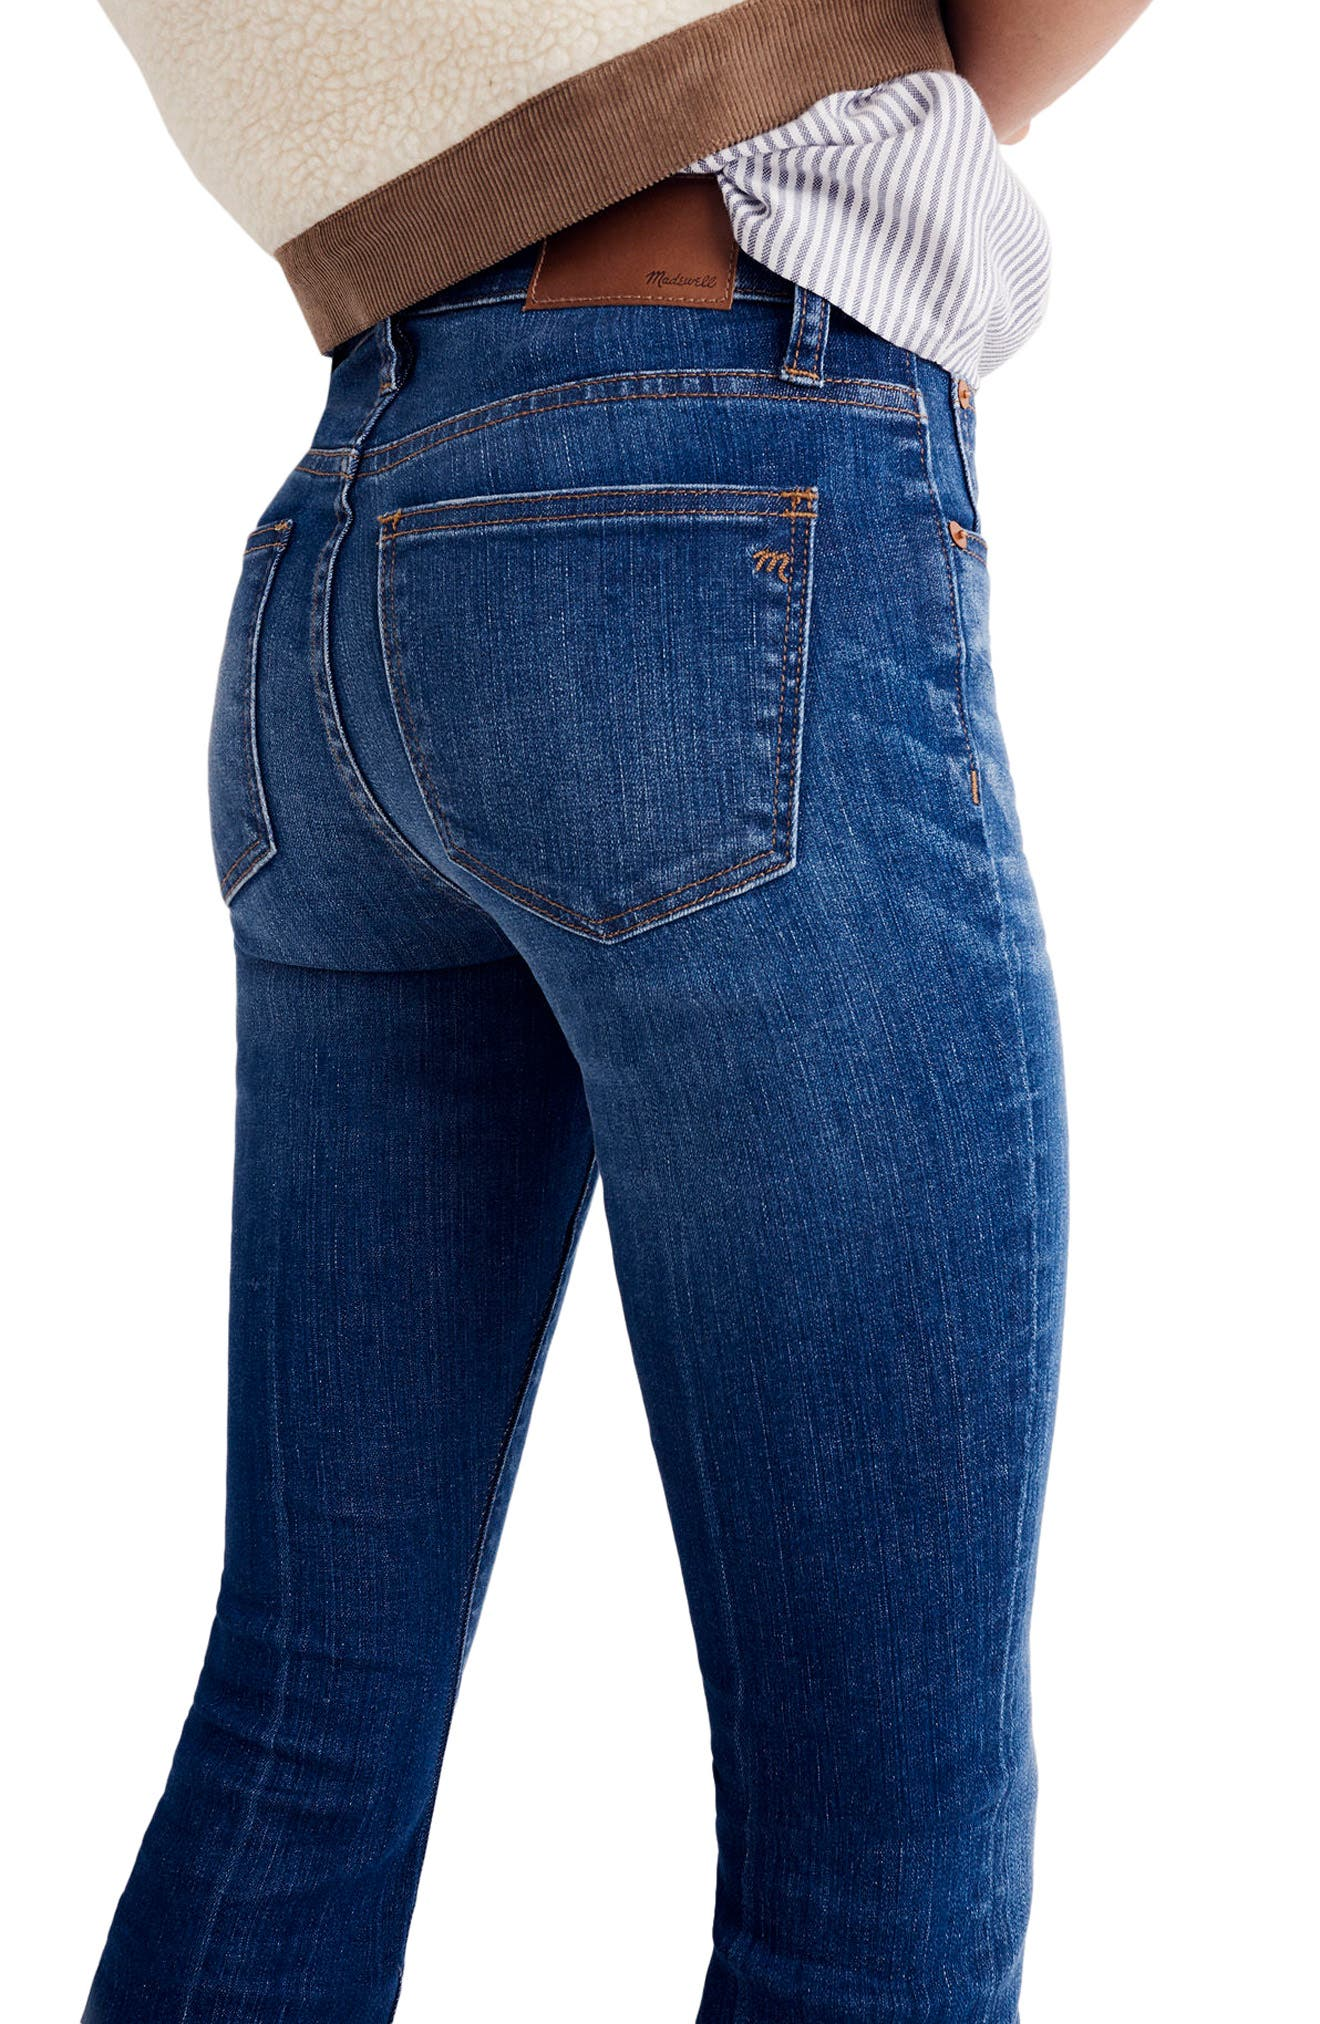 Cali Demi Boot Jeans,                             Alternate thumbnail 2, color,                             400